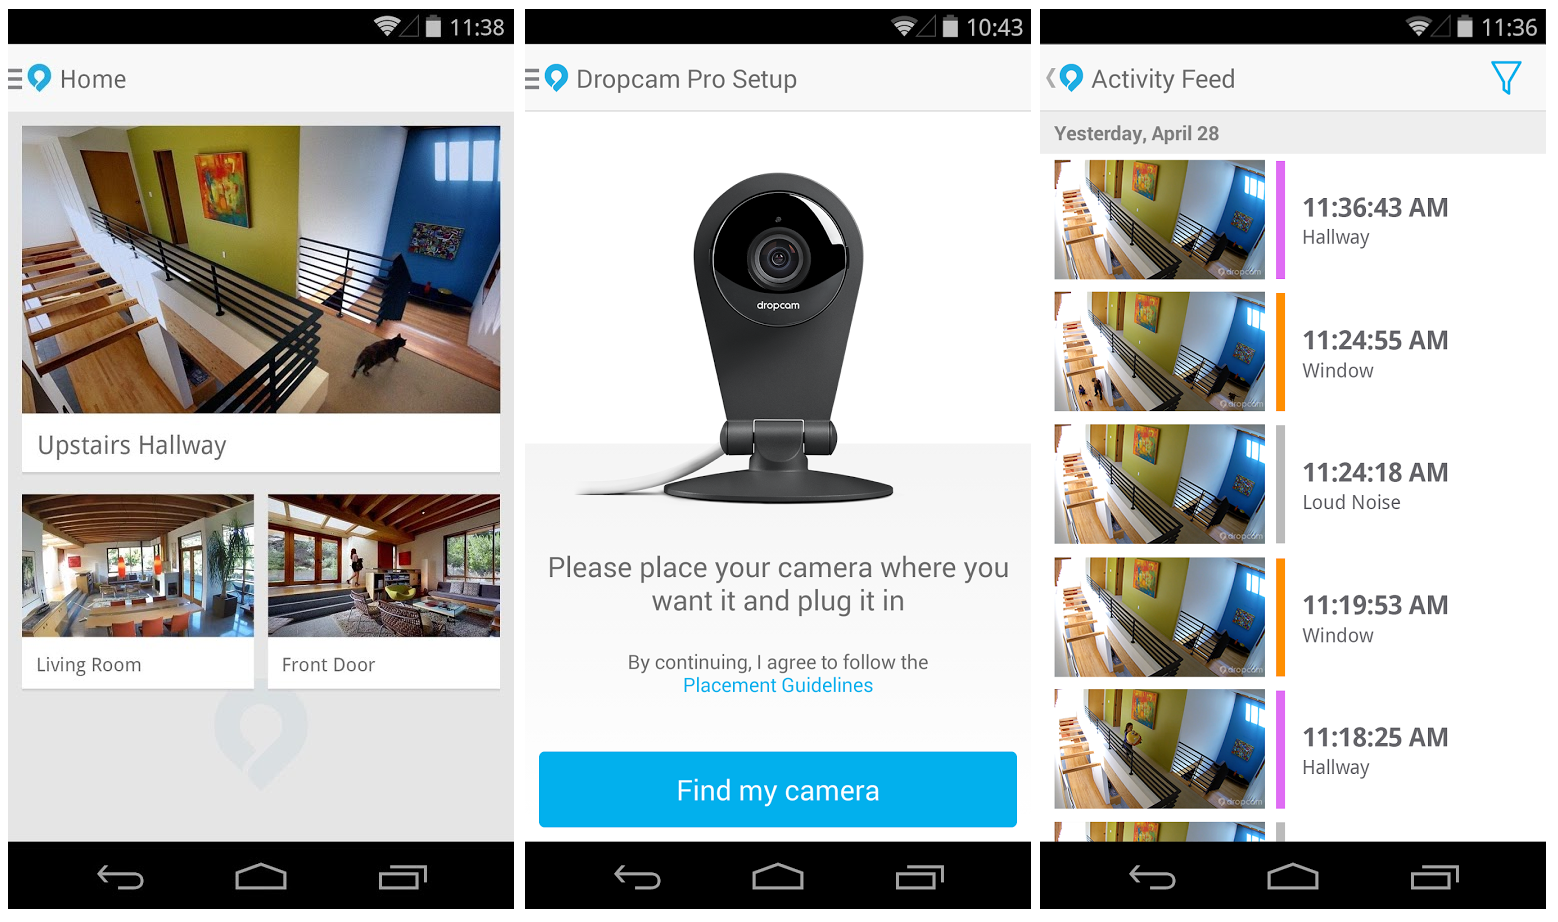 Google's Nest to Acquire Dropcam for $555m